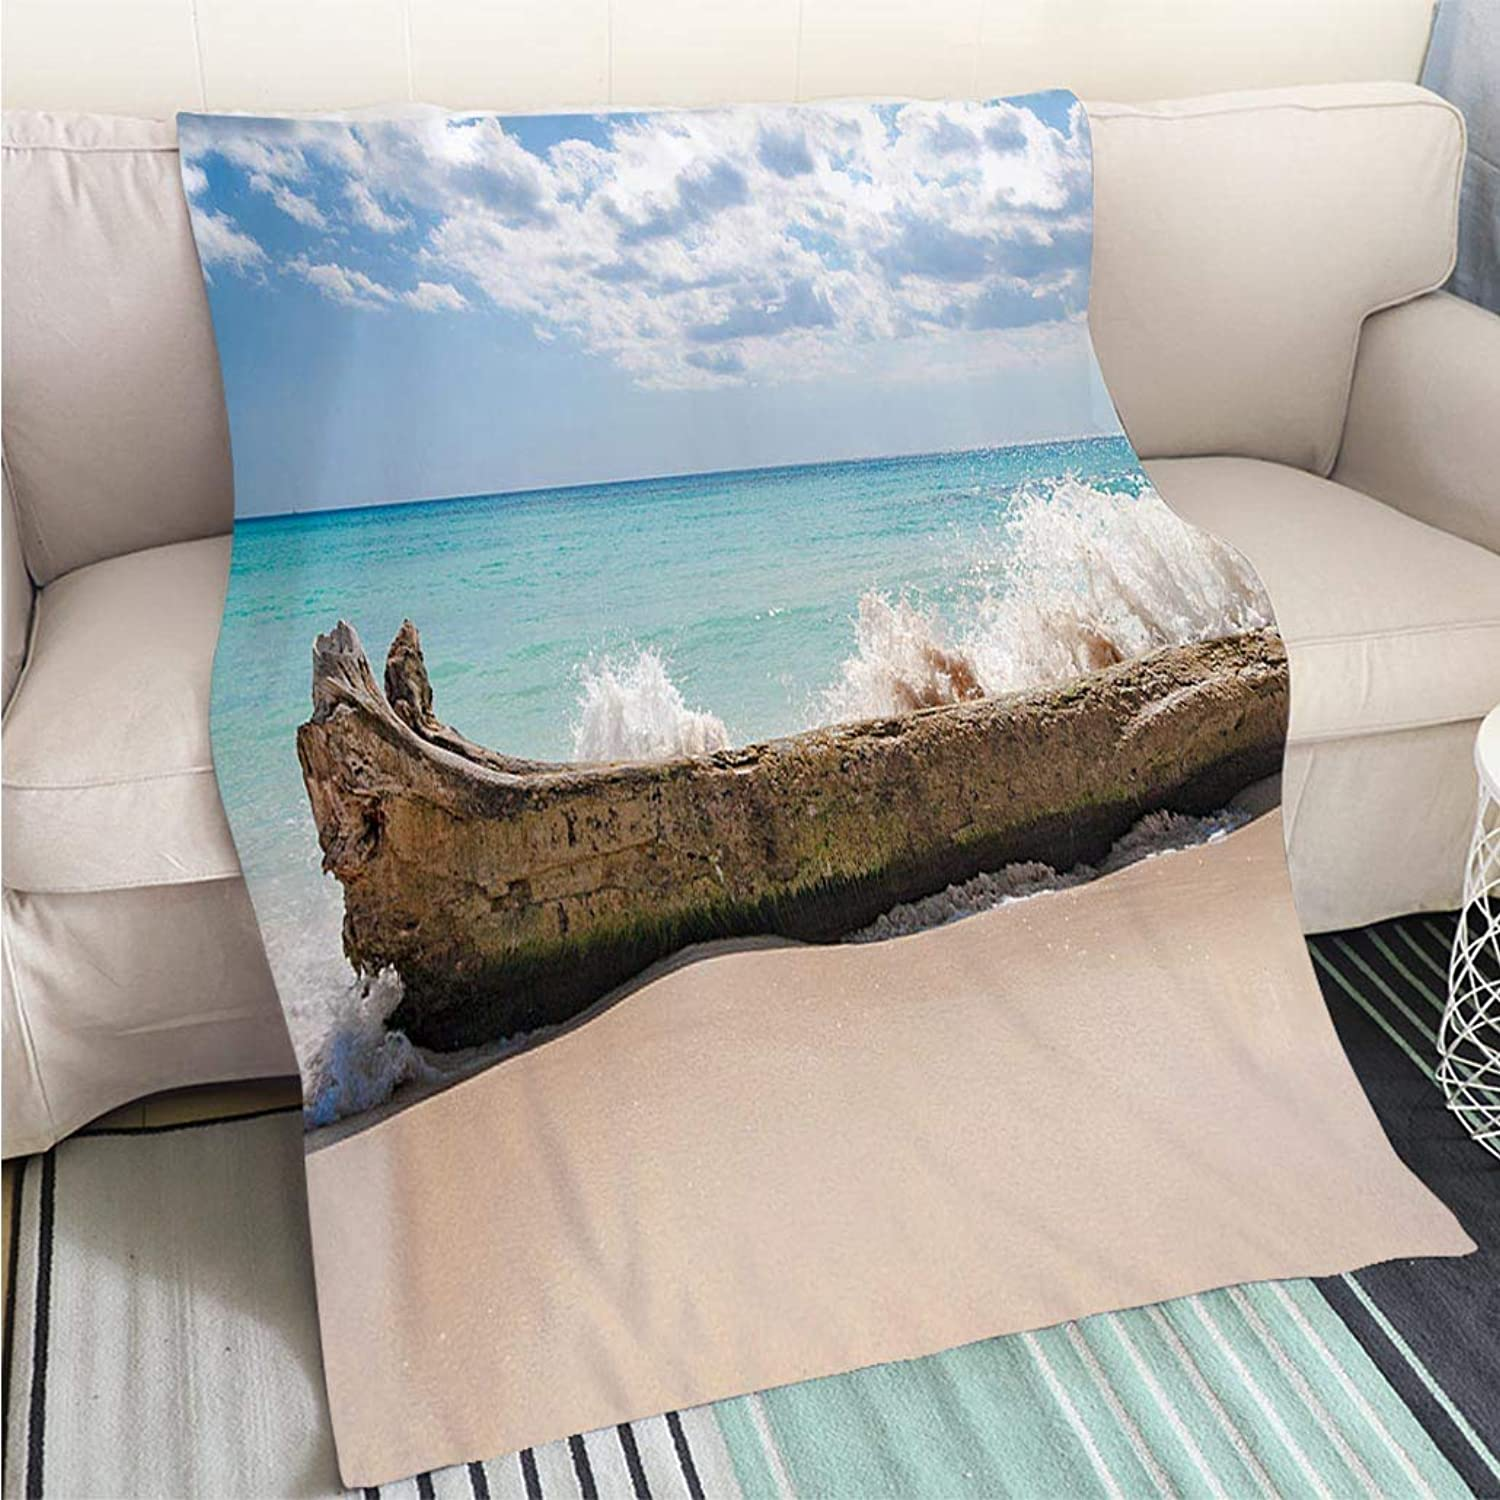 BEICICI Super Soft Flannel Thicken Blanket Splashing Water Over a Tree Trunk at The Beach Sofa Bed or Bed 3D Printing Cool Quilt